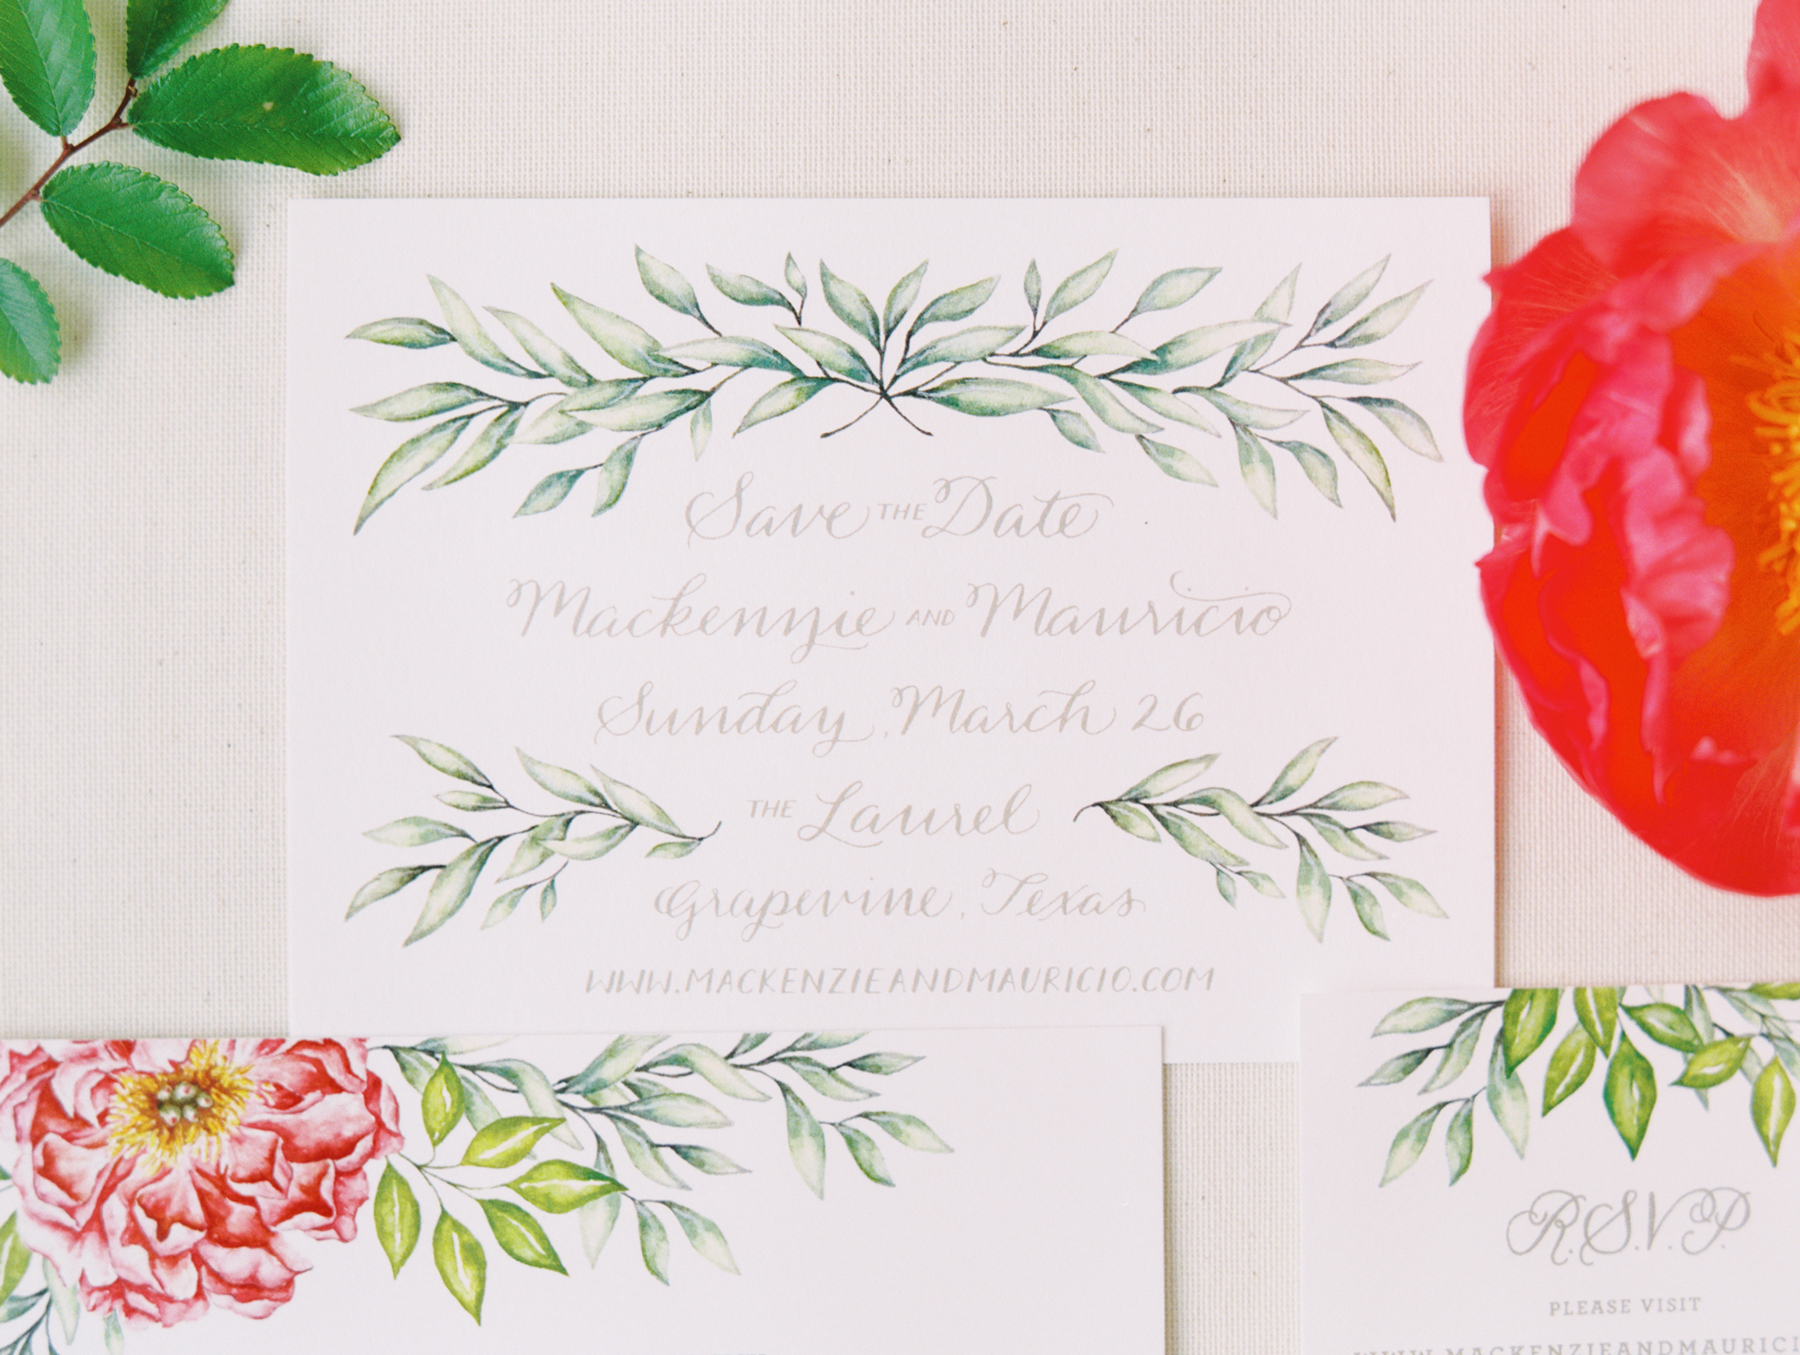 off white stationary save the dates with greenery design accents